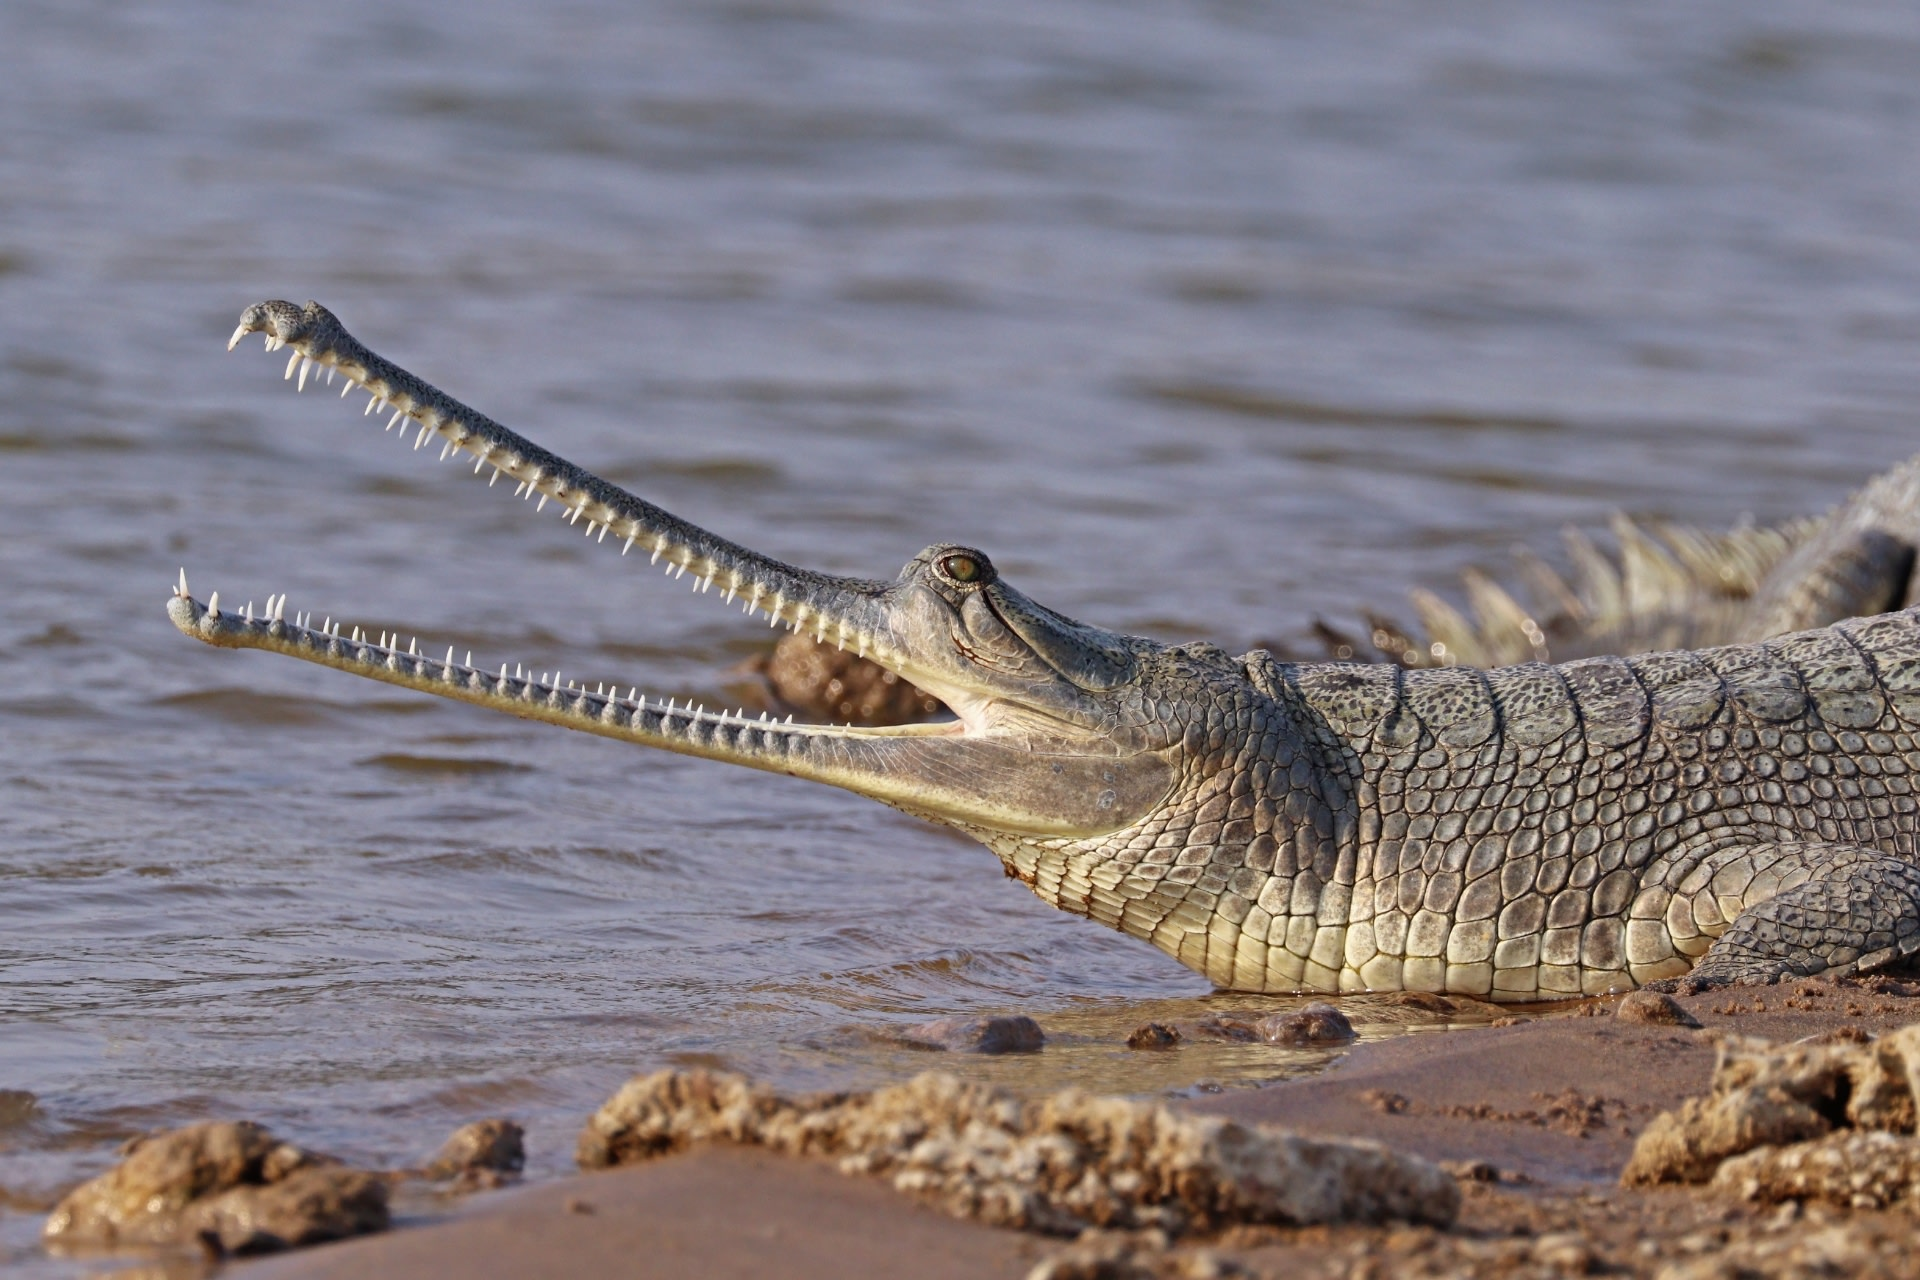 The population of gharials, a critically endangered species, has steadily increased along the Gandak river. Photo: Charles J Sharp- CC BY-SA 4.0.